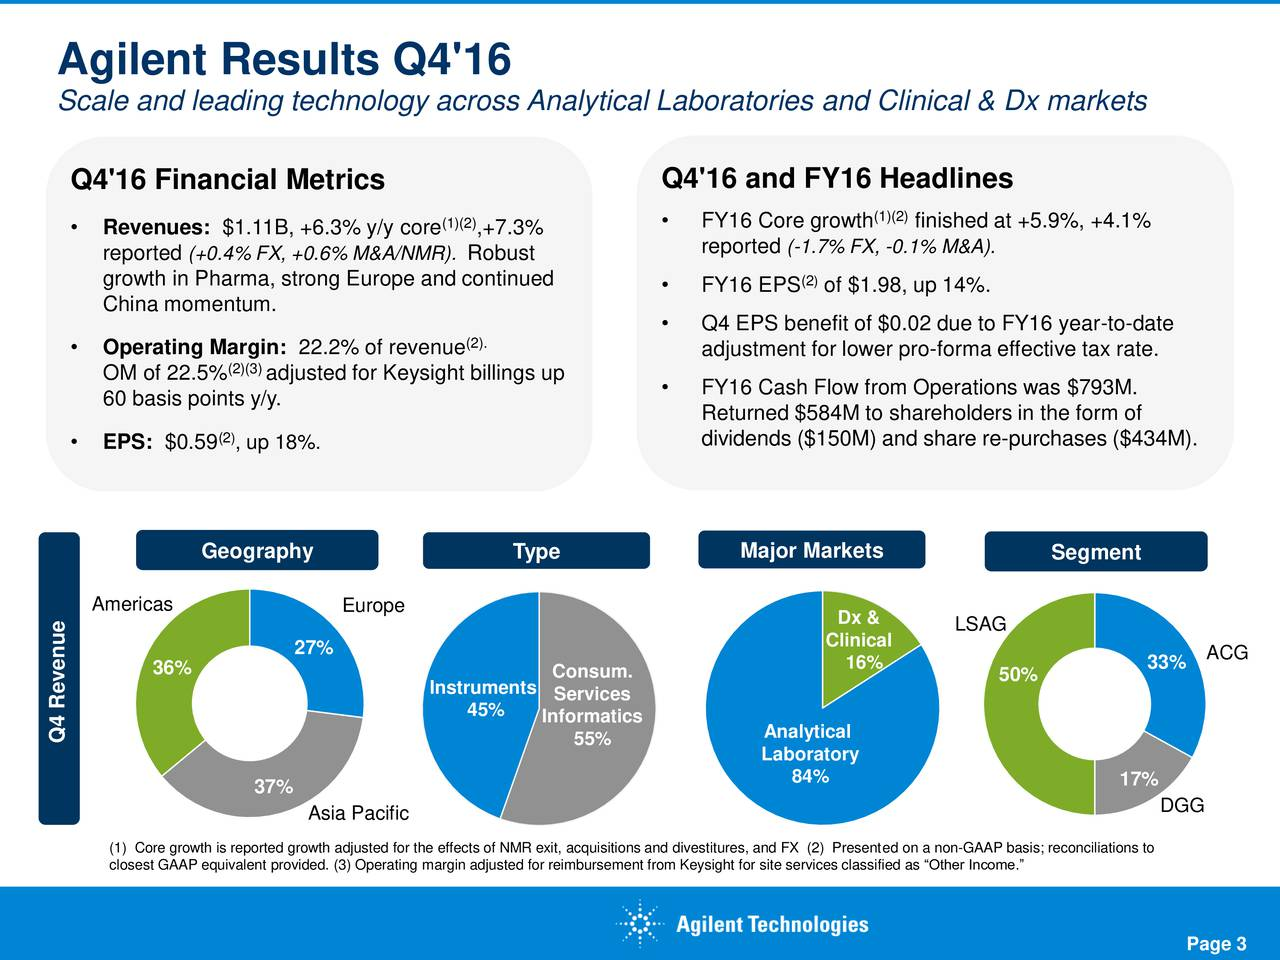 Scale and leading technology across Analytical Laboratories and Clinical & Dx markets Q4'16 Financial Metrics Q4'16 and FY16 Headlines (1)(2)  FY16 Core growth (1)(finished at +5.9%, +4.1% Revenues: $1.11B, +6.3% y/y core ,+7.3% reported(+0.4% FX, +0.6% M&A/NMR). Robust reported (-1.7% FX, -0.1% M&A). growth in Pharma, strong Europe and continued () FY16 EPS of $1.98, up 14%. China momentum. (2).  Q4 EPS benefit of $0.02 due to FY16 year-to-date Operating Margin: 22.2% of revenue adjustment for lower pro-forma effective tax rate. OM of 22.5% (2)adjusted for Keysight billings up 60 basis points y/y.  FY16 Cash Flow from Operations was $793M. Returned $584M to shareholders in the form of EPS: $0.59 (, up 18%. dividends ($150M) and share re-purchases ($434M). Geography Type Major Markets Segment Americas Europe Dx & Clinical LSAG 27% 16% 33% ACG 36% Consum. 50% Instruments Services 45% Informatics Q4 Revenue 55% Analytical Laboratory 84% 17% 37% Asia Pacific DGG closest GAAP equivalent provided. (3) Operating margin adjusted for reimbursement from Keysight for site services classified as Other Income.s; reconciliations to Page 3